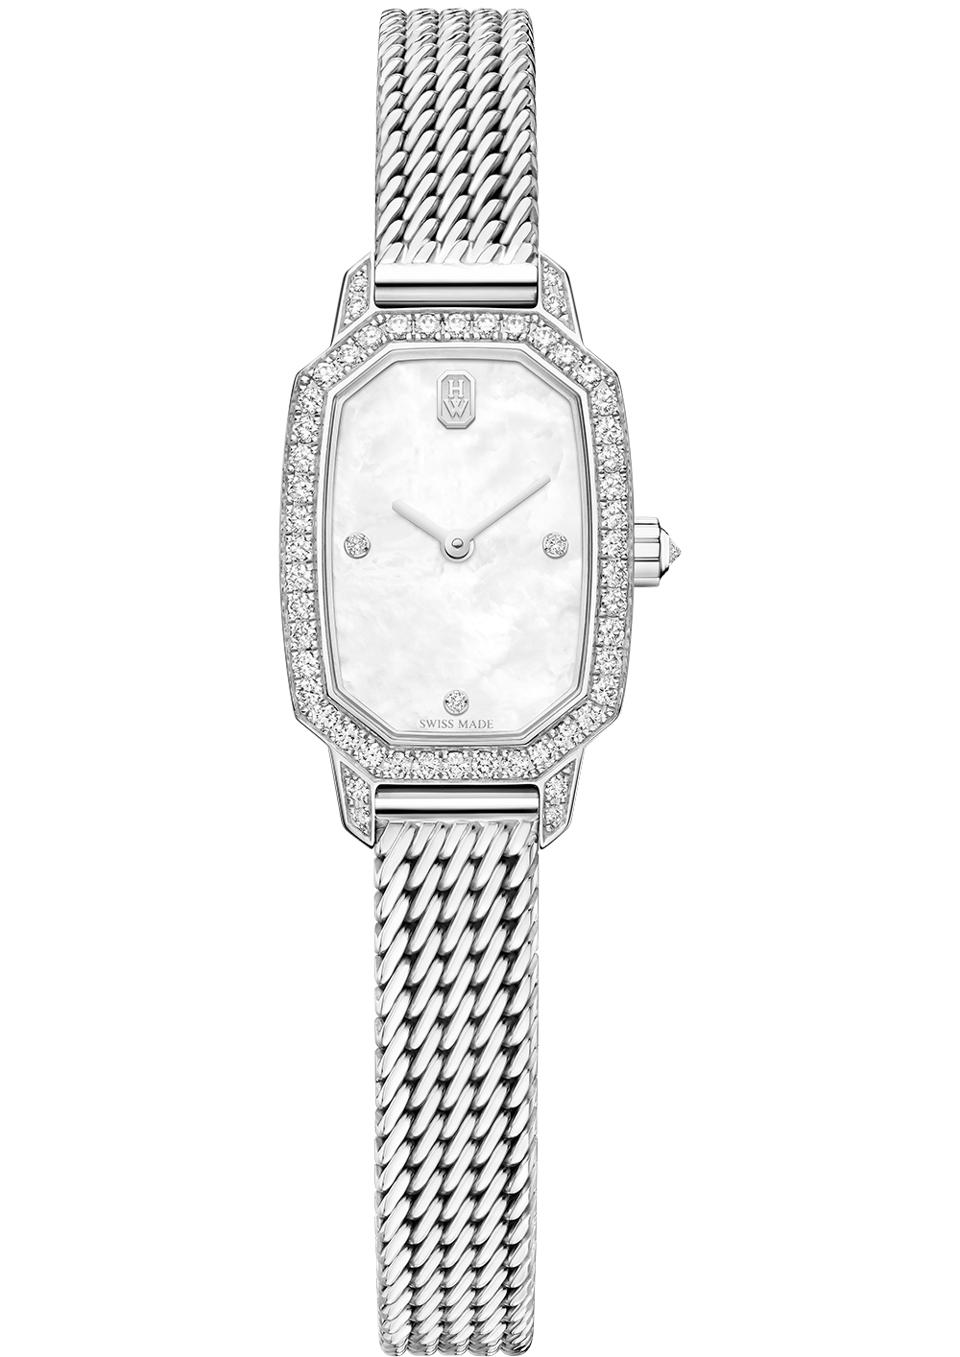 Diamond watch on a Milanese style woven bracelet from the Emerald collection by Harry Winston.